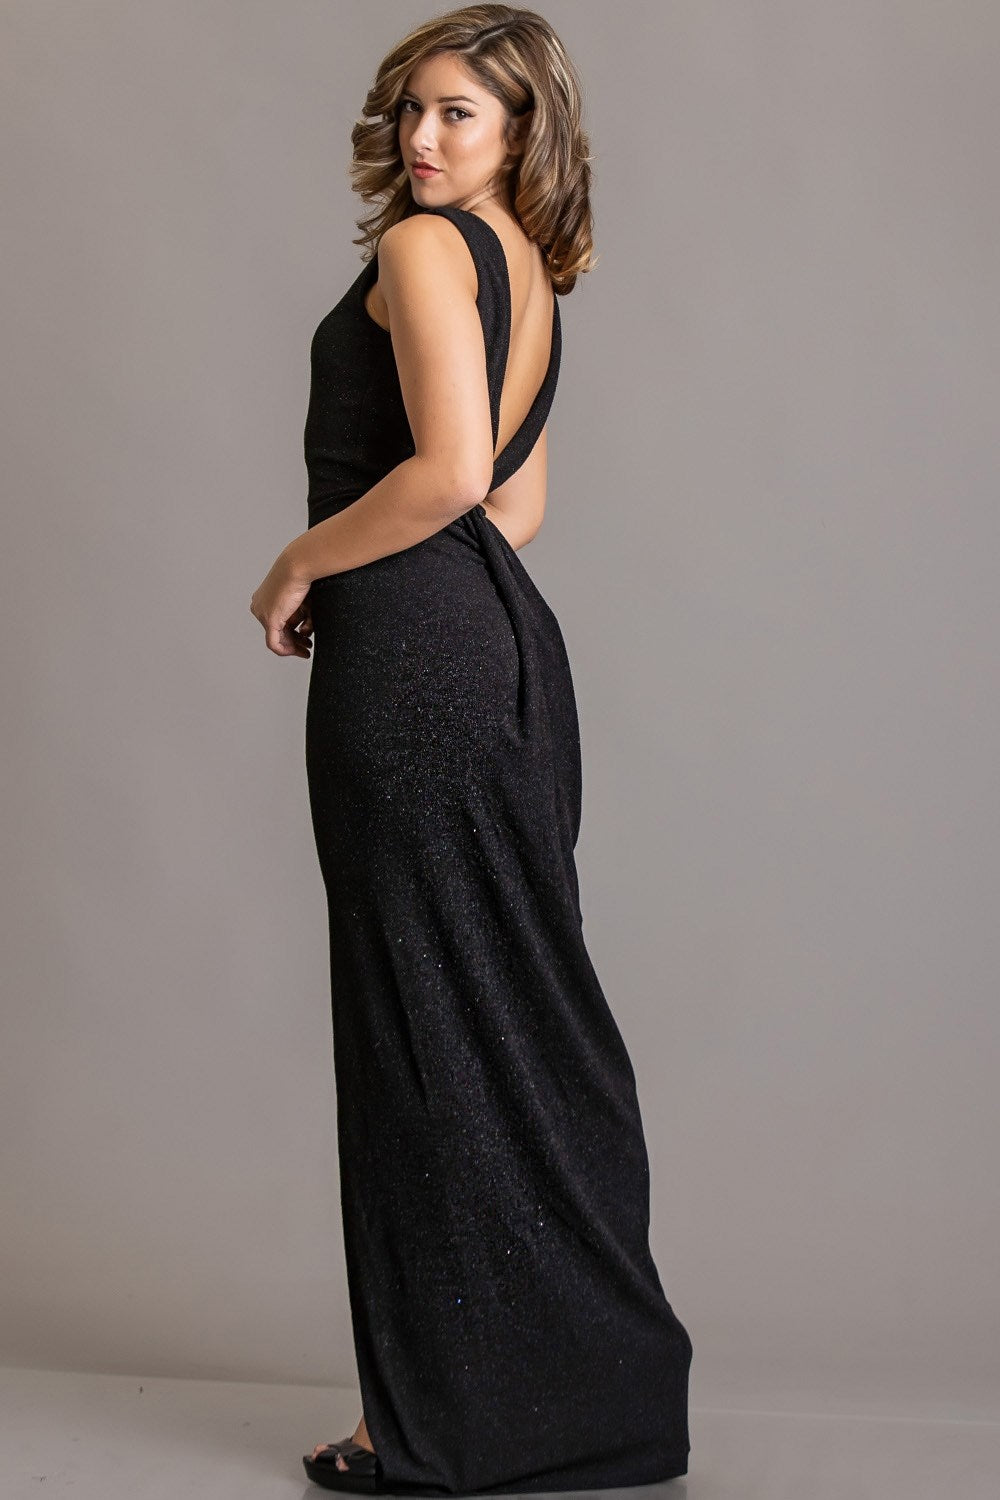 Lucille's Black Glitter Evening Gown